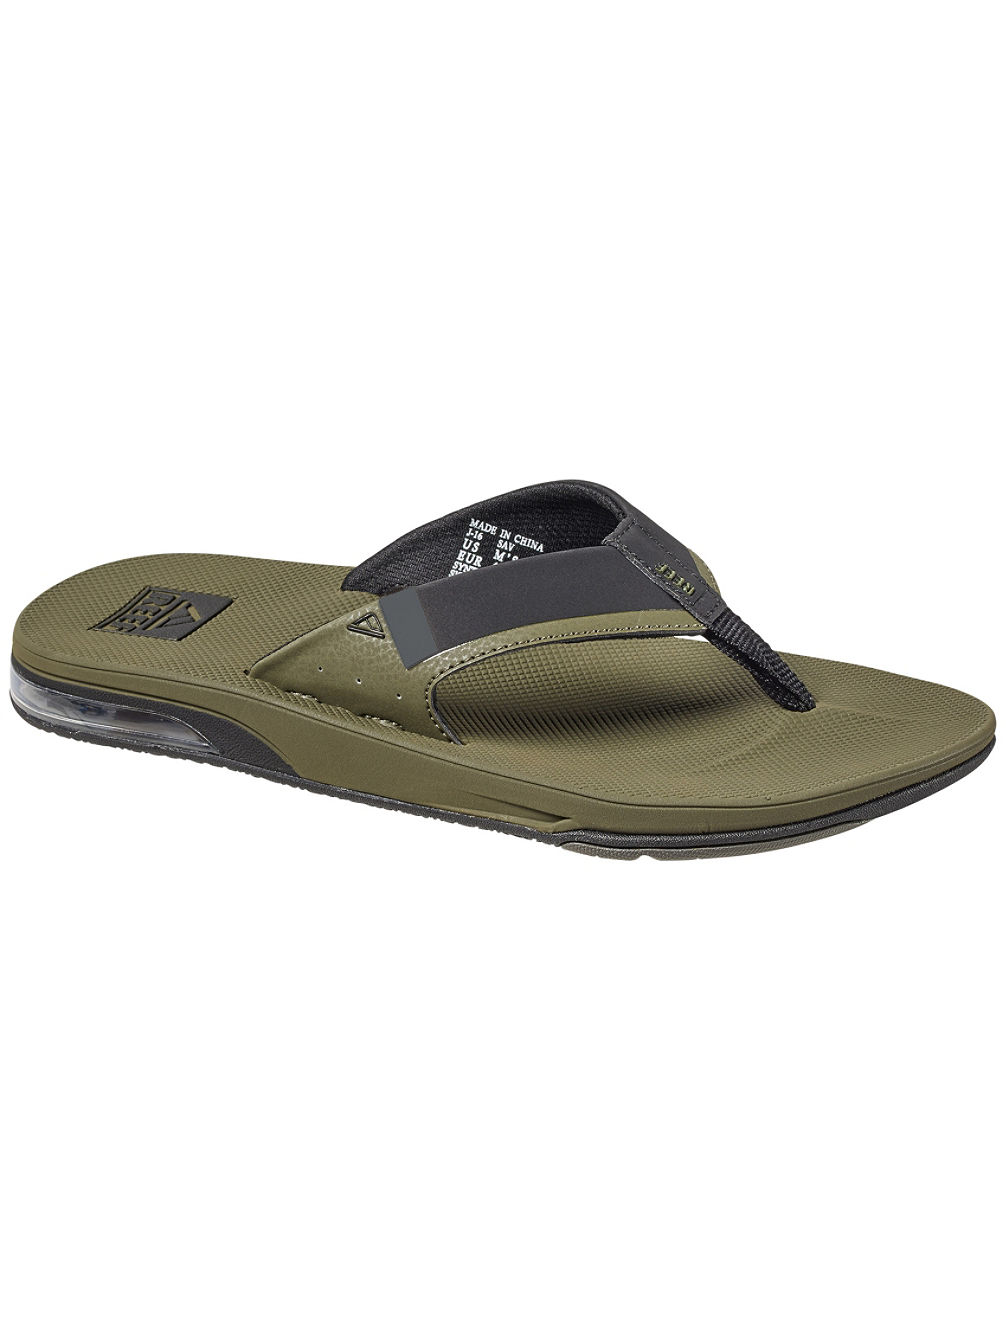 1de4a5351c23 Buy Reef Fanning Low Sandals online at Blue Tomato